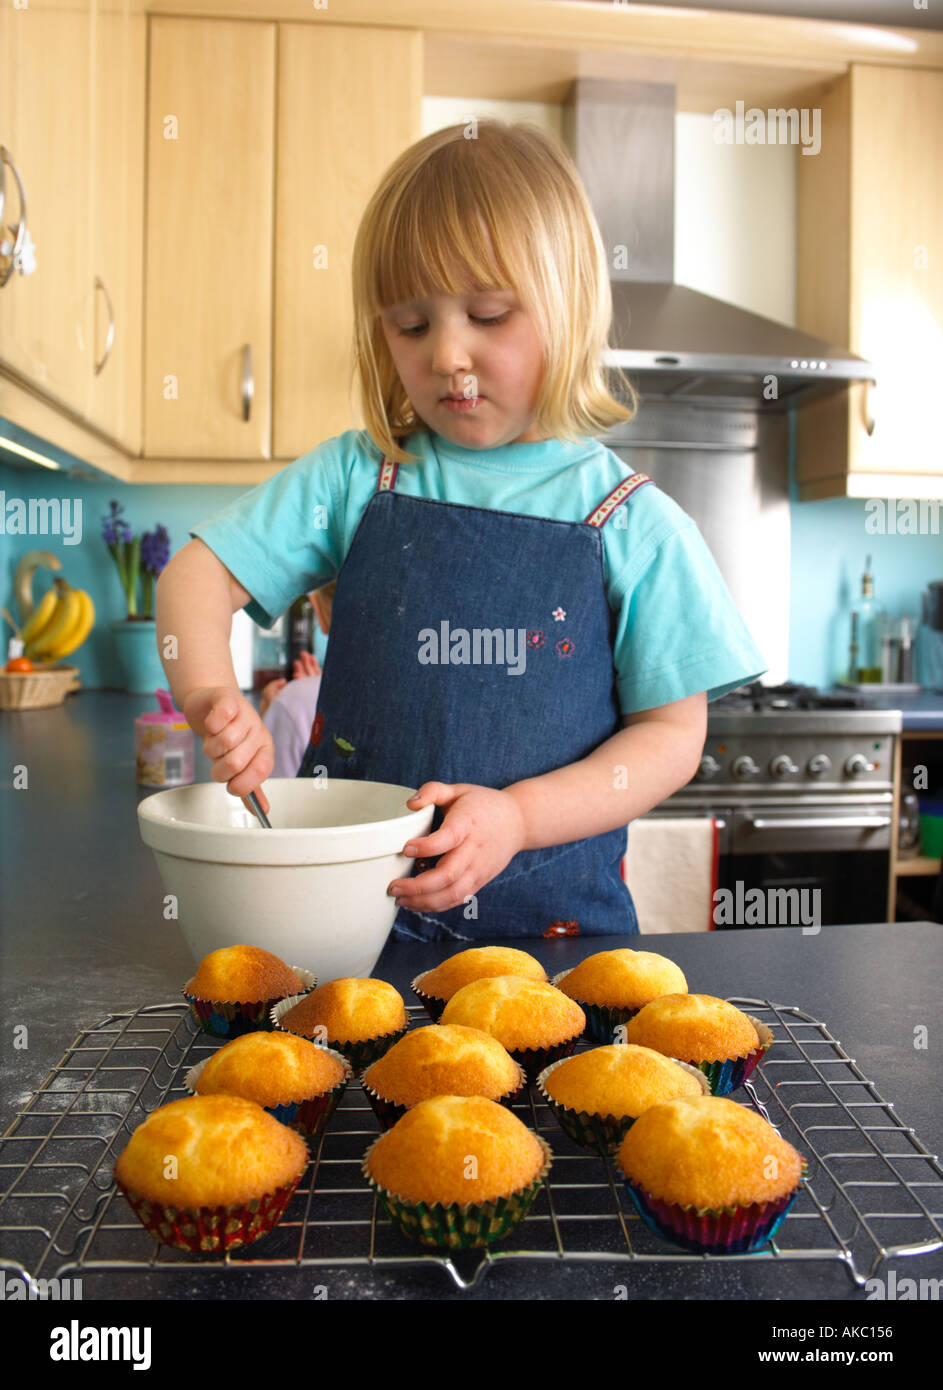 Children cooking cakes in their kitchen at home - Stock Image